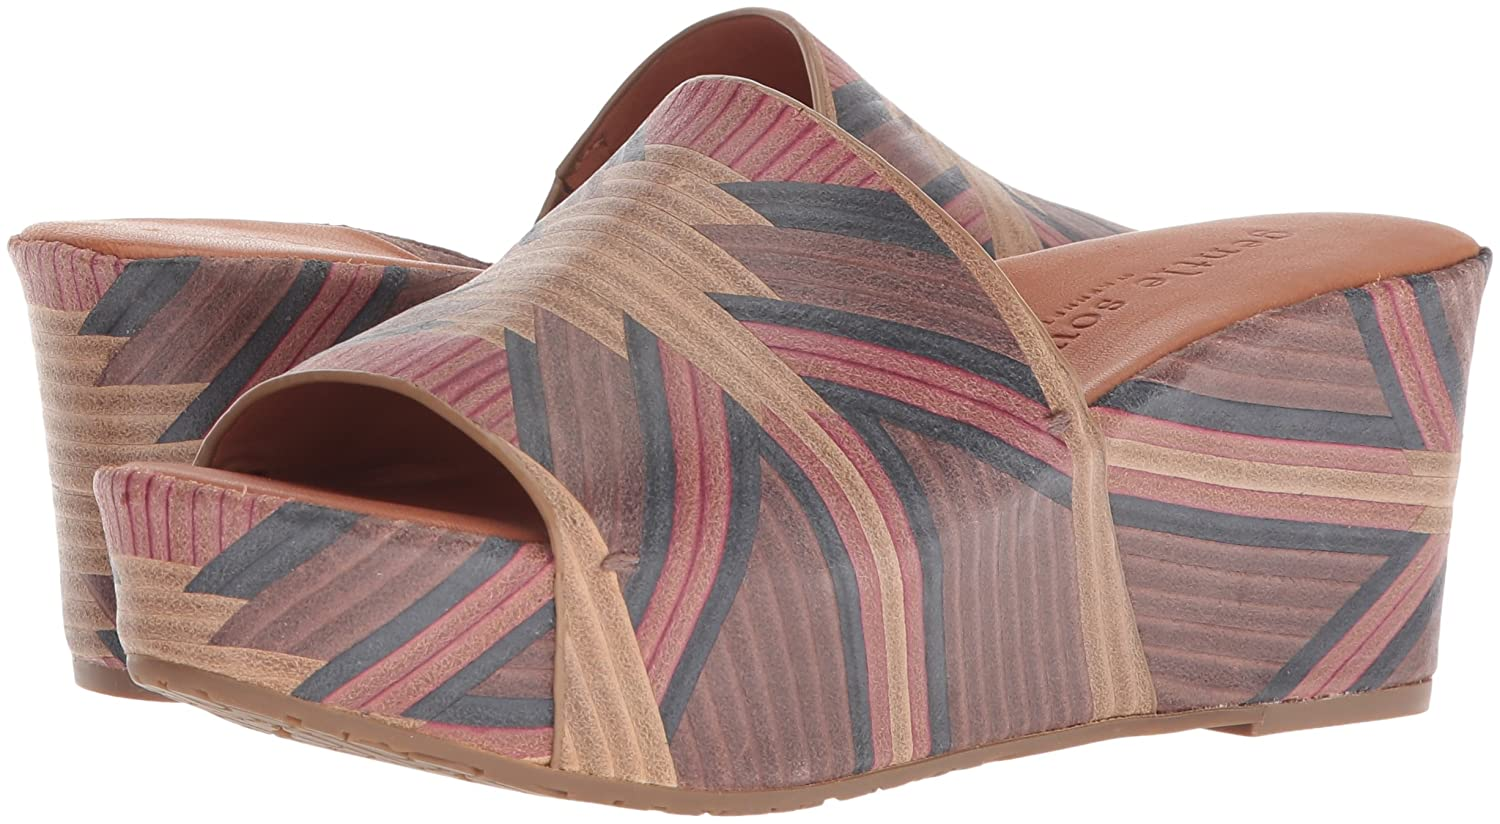 Gentle Souls Women's 8.5 Forella Platform Slip Slide Sandal B075GYWQ49 8.5 Women's B(M) US|Brown/Multi d9574c